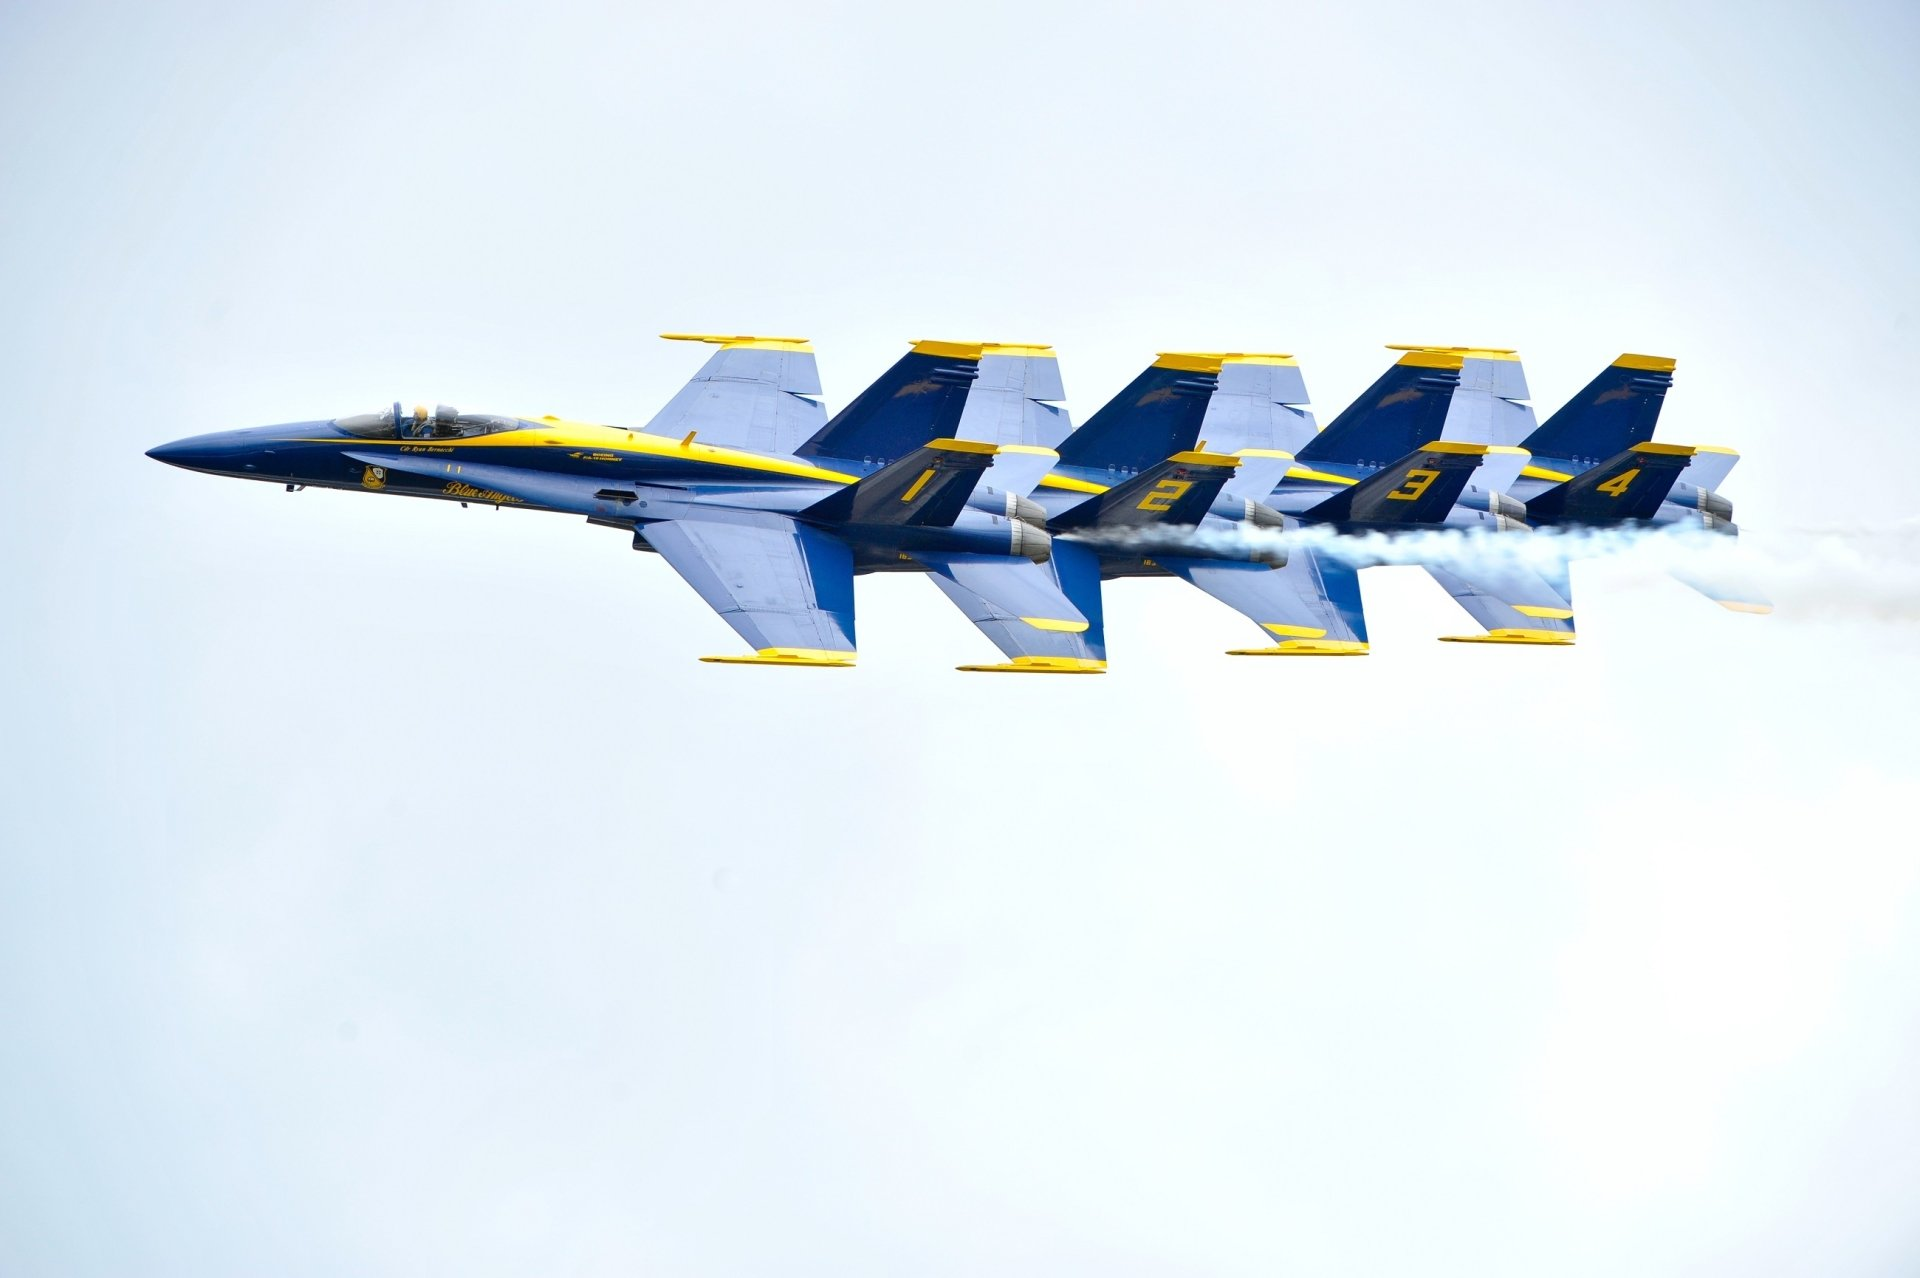 Military - Air Show  Blue Angels Aircraft Navy McDonnell Douglas F/A-18 Hornet Jet Fighter Military Wallpaper